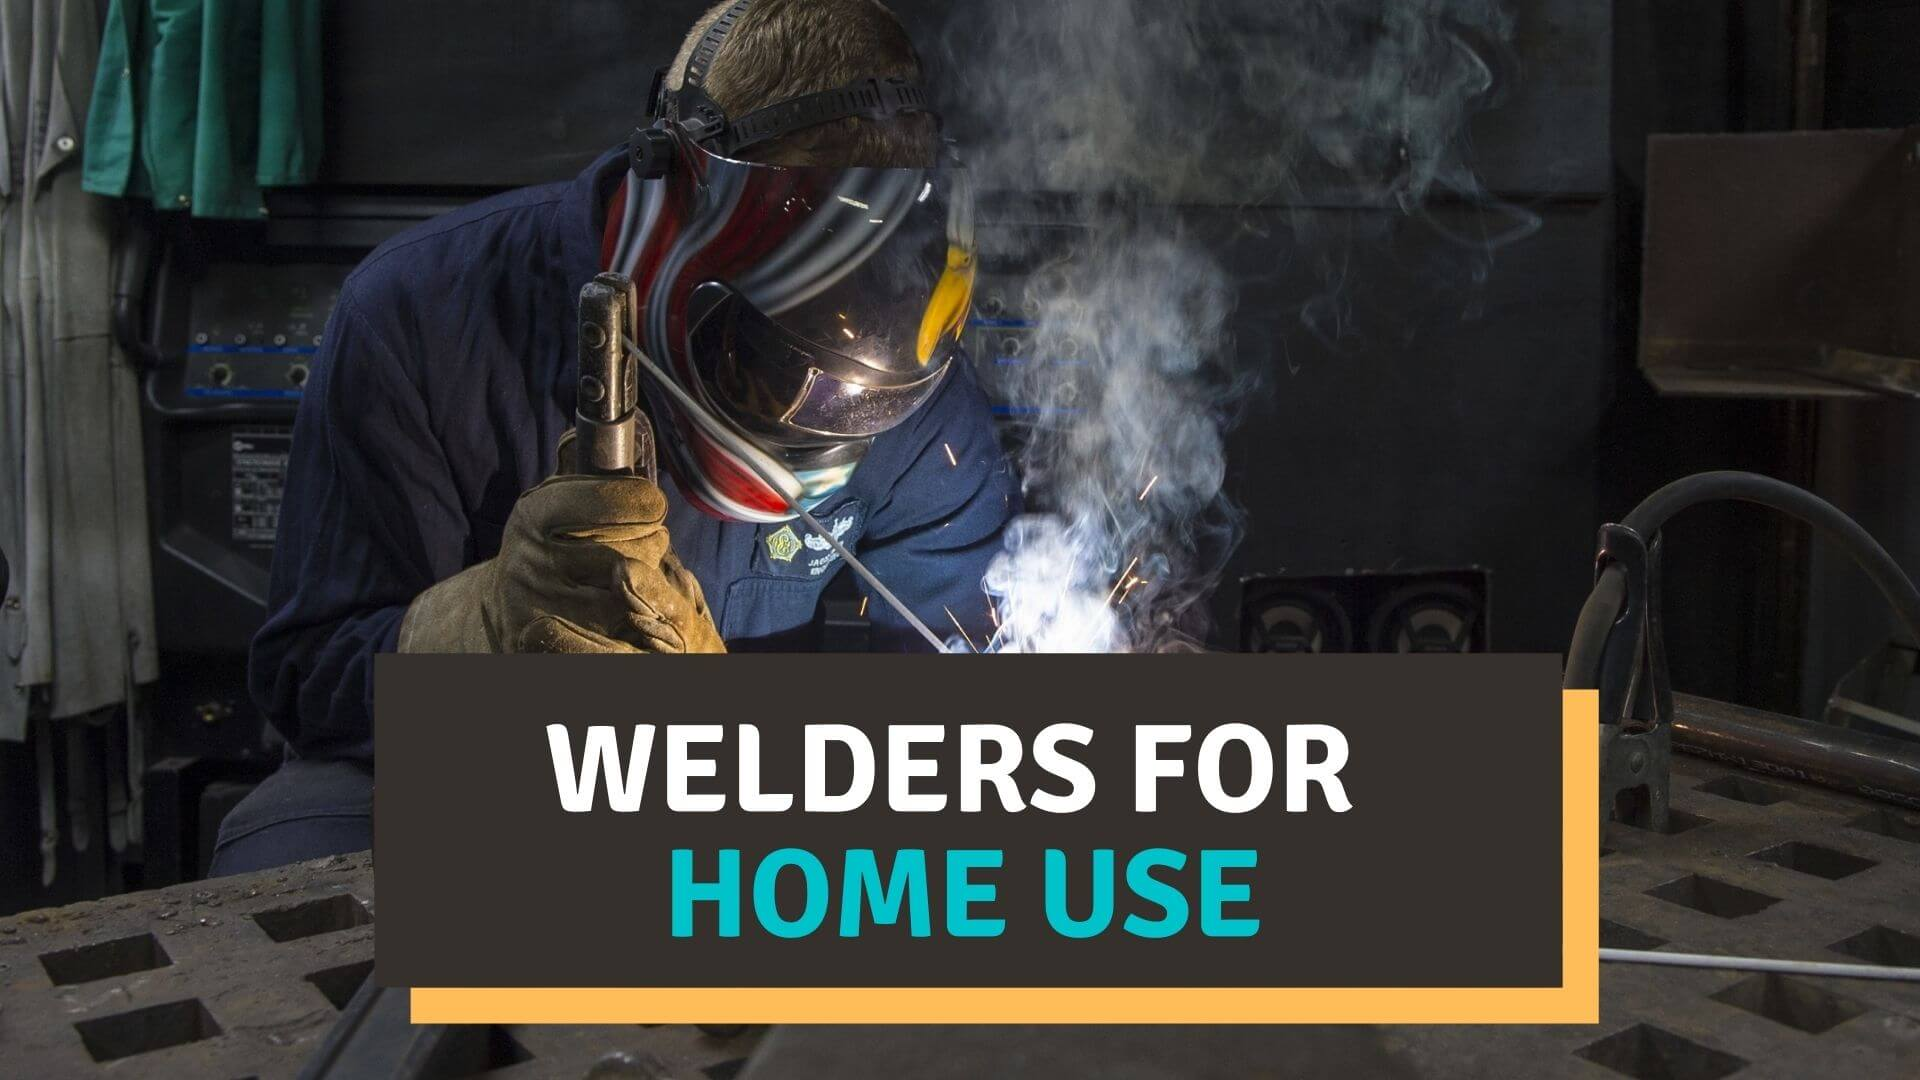 Welder for home use